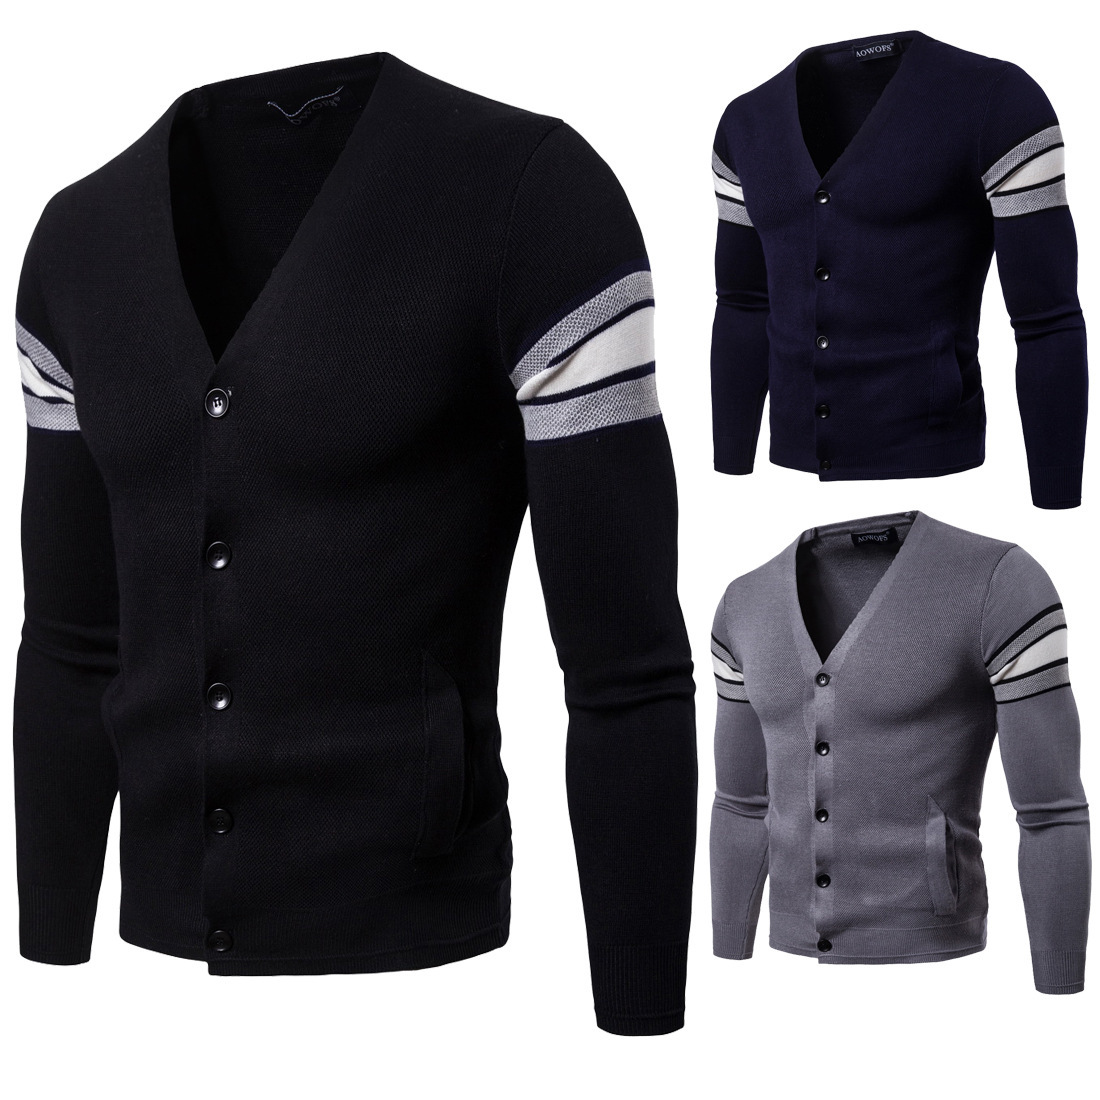 Responsible New Autumn Winter Men's Knitted Cardigan Masculino Sweater Long Sleeve V Neck Black Sweater Business Men Slim Fit Knitwear